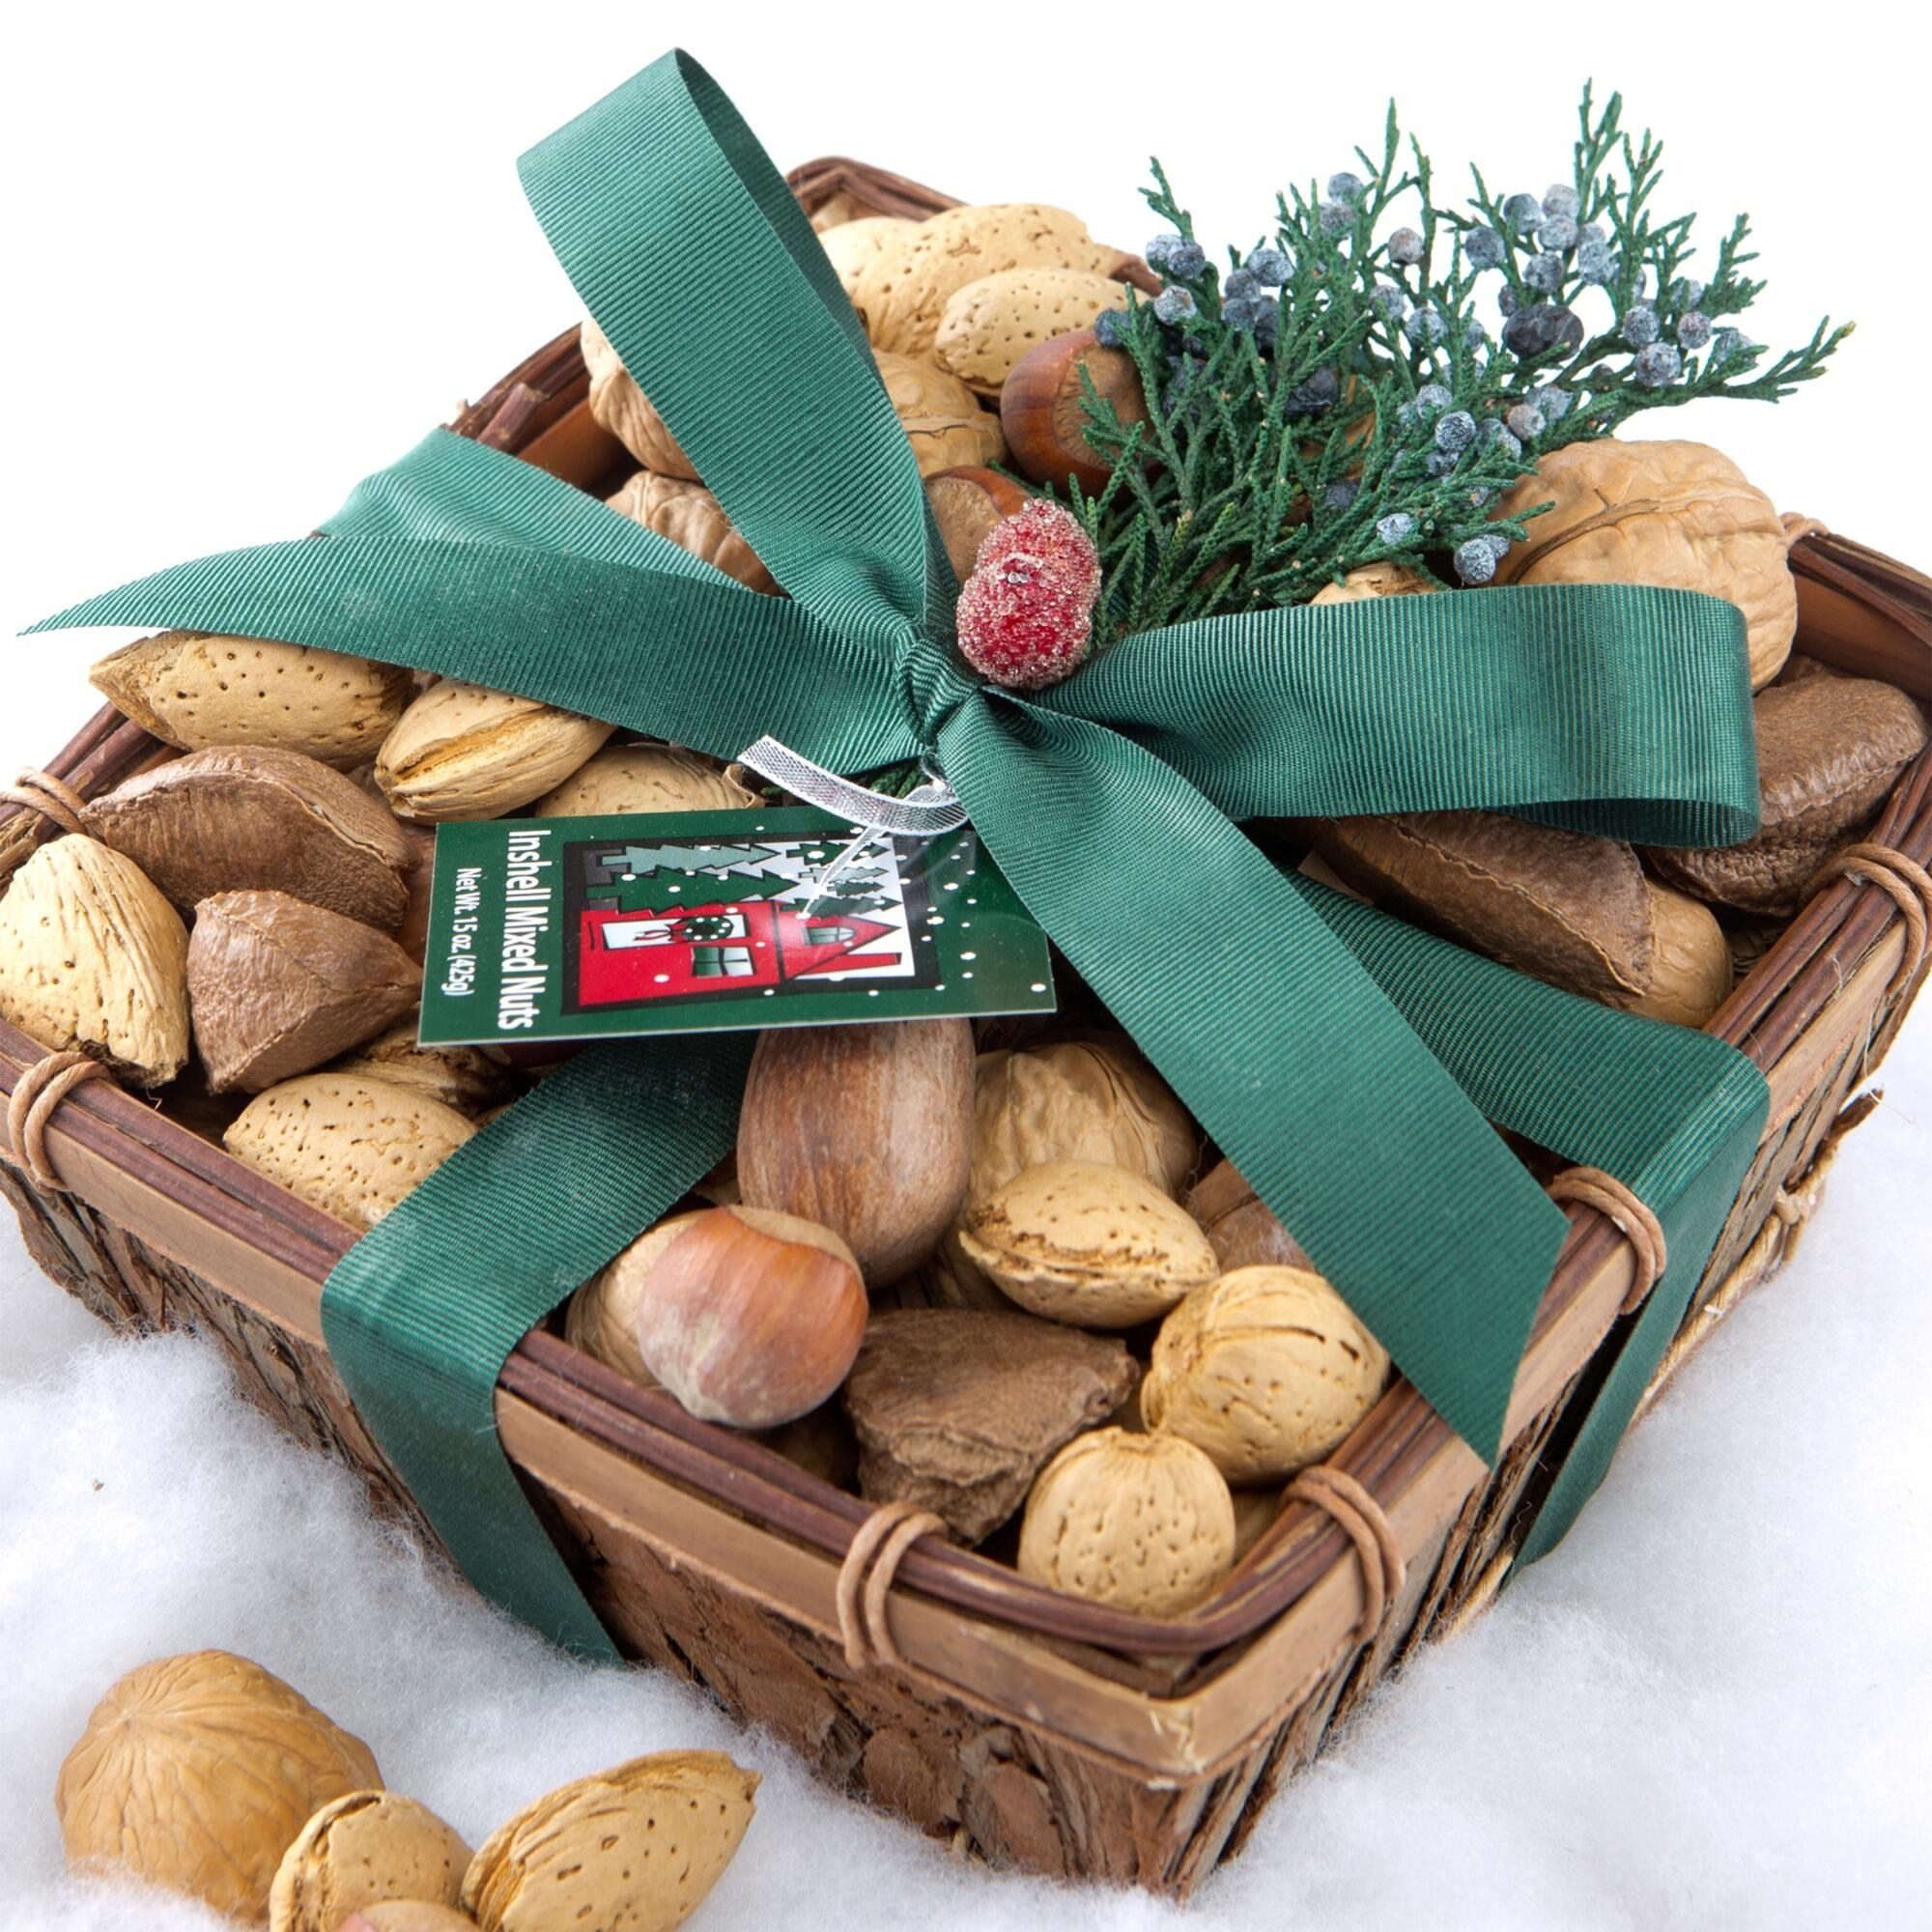 The square wood tray filled with a selection of different kinds of nuts